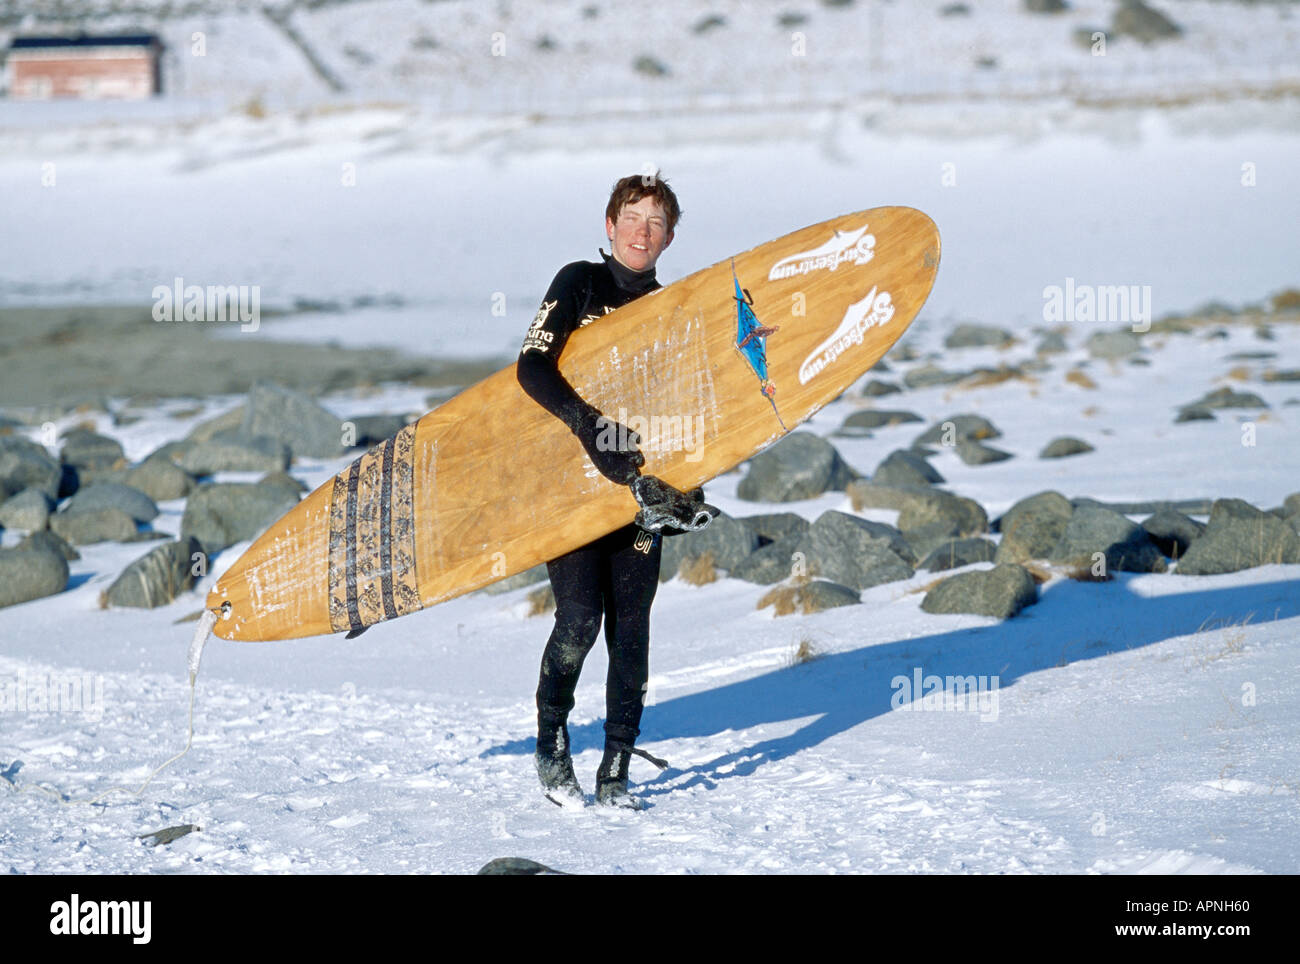 SHAUN WHITE ON BEACH WITH SURFBOARD IN SNOW, NORWAY - Stock Image